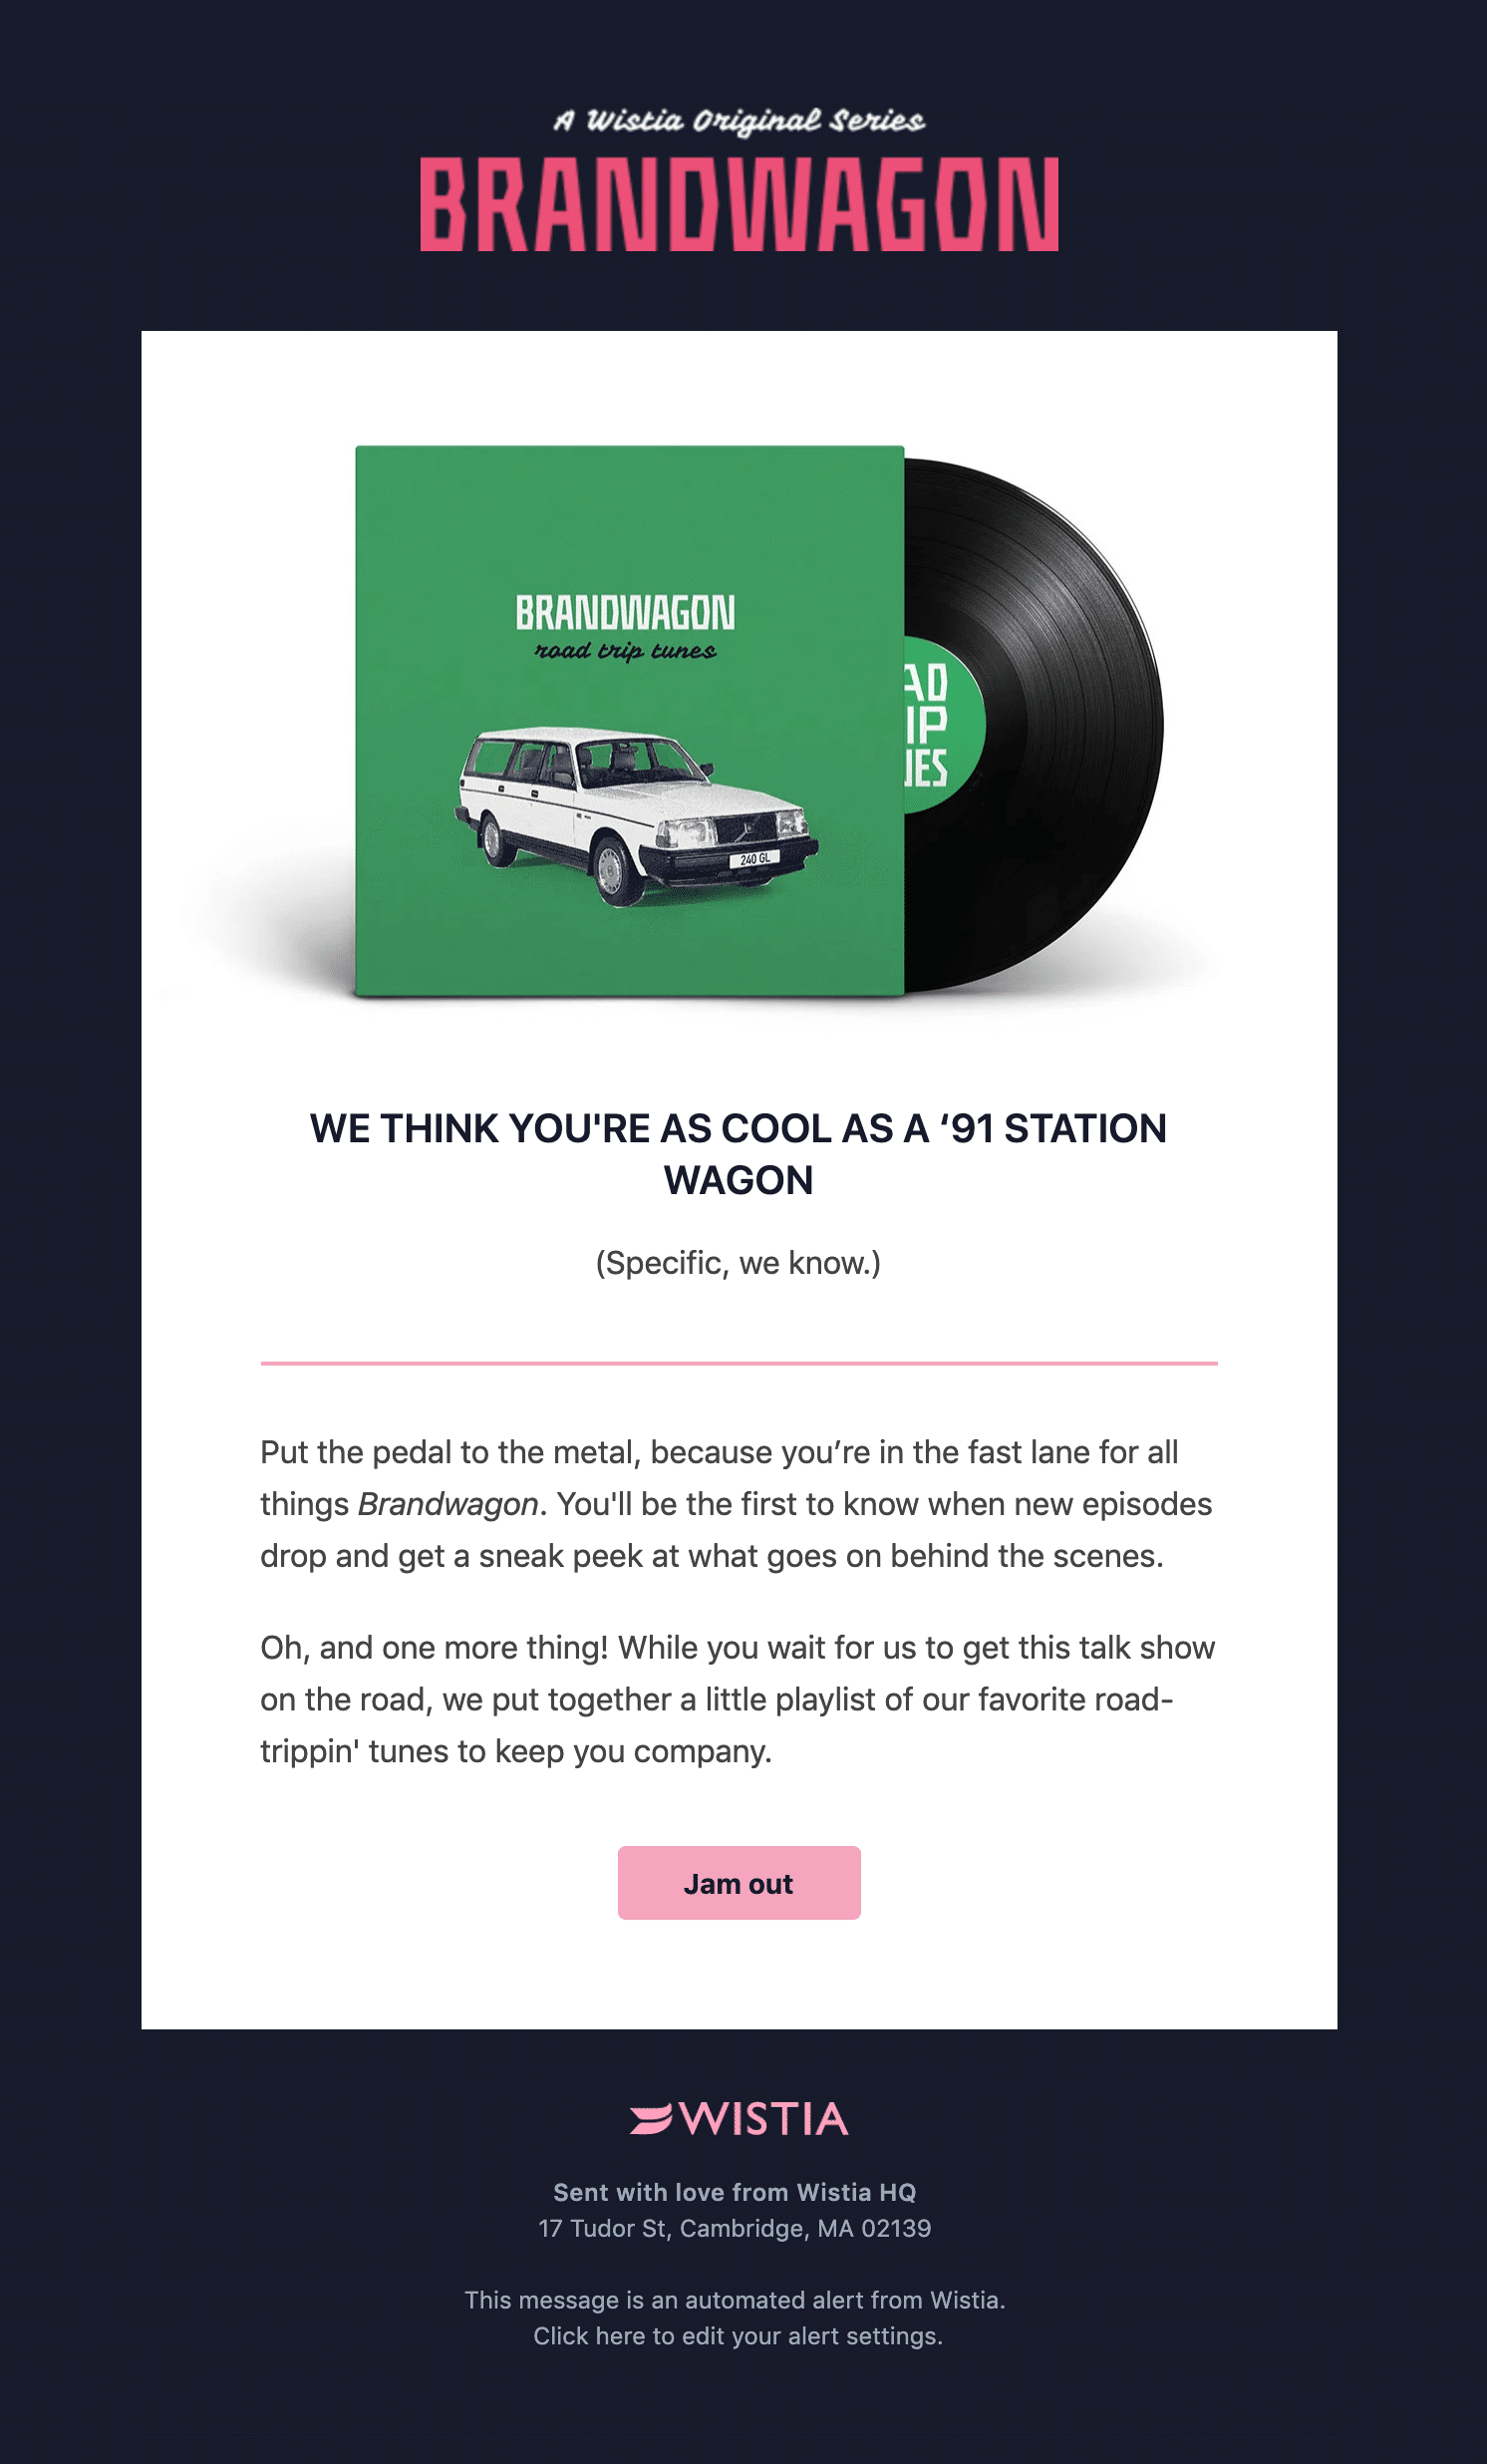 This email from Wistia provides a playlist to keep their subscribers engaged with their brand while they wait.